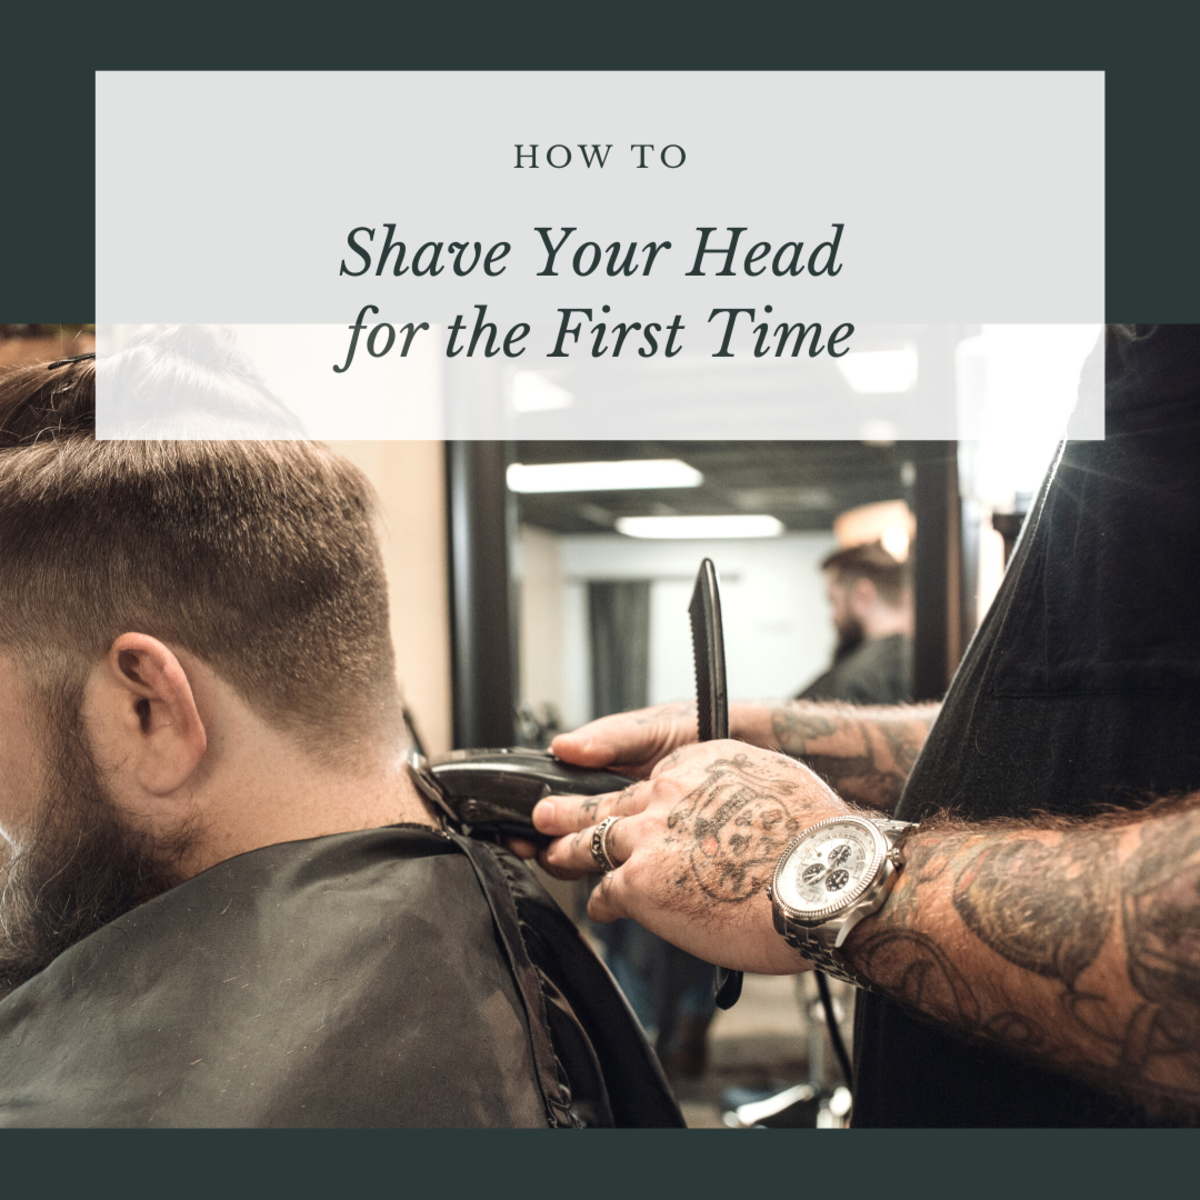 A guide to shaving your head.